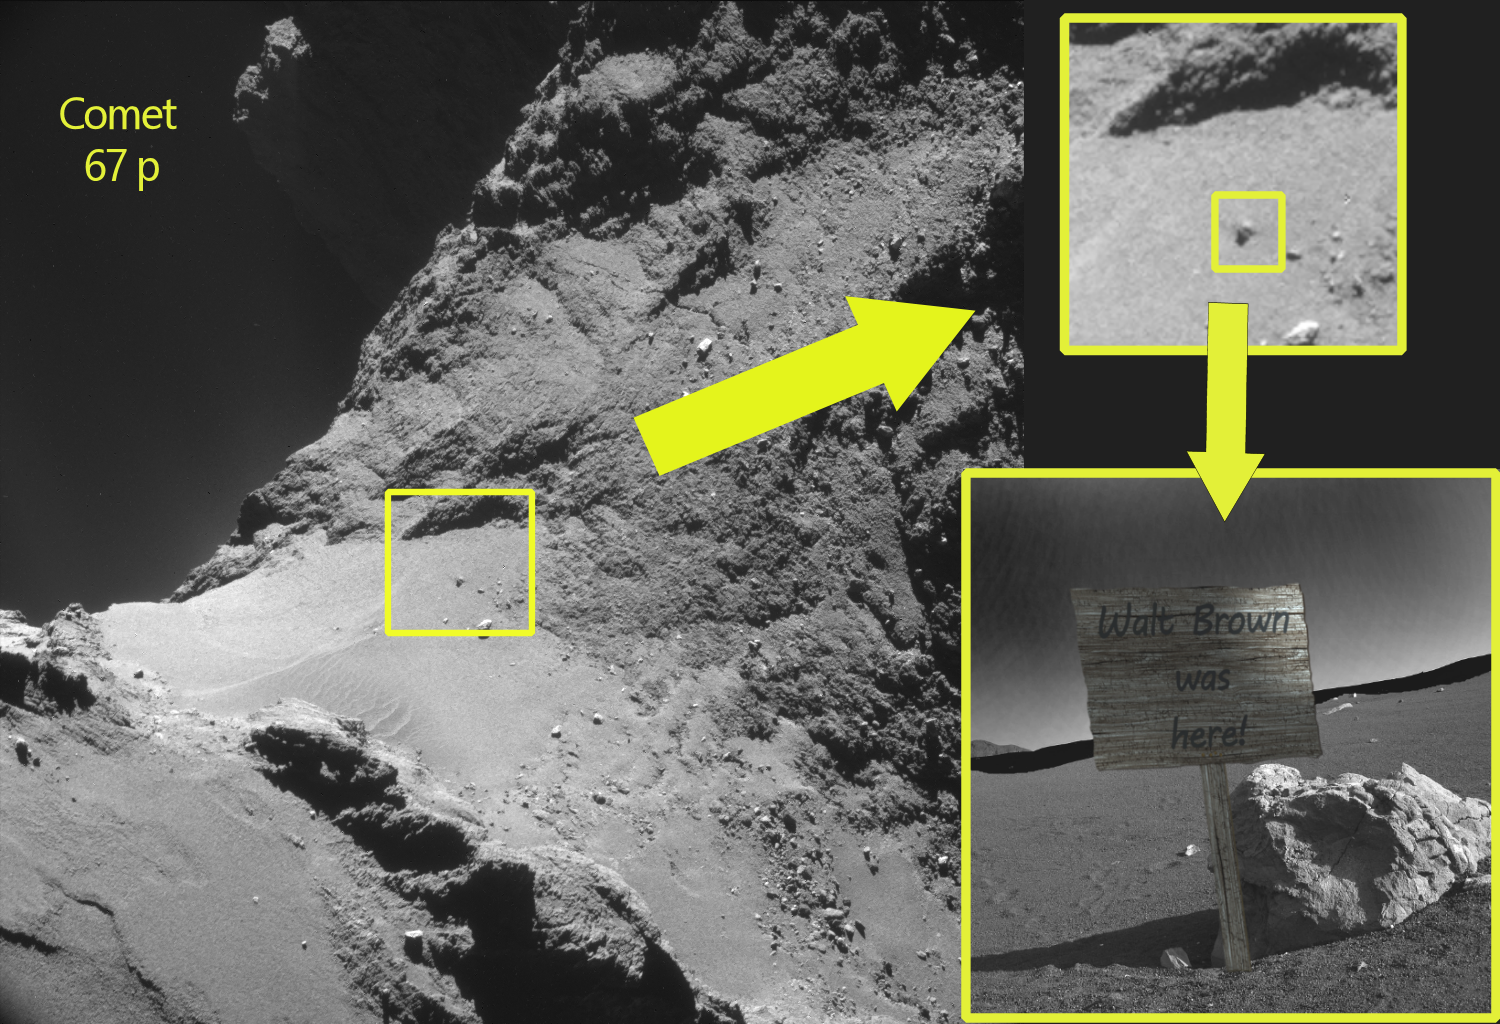 Walt Brown was here comet 67p